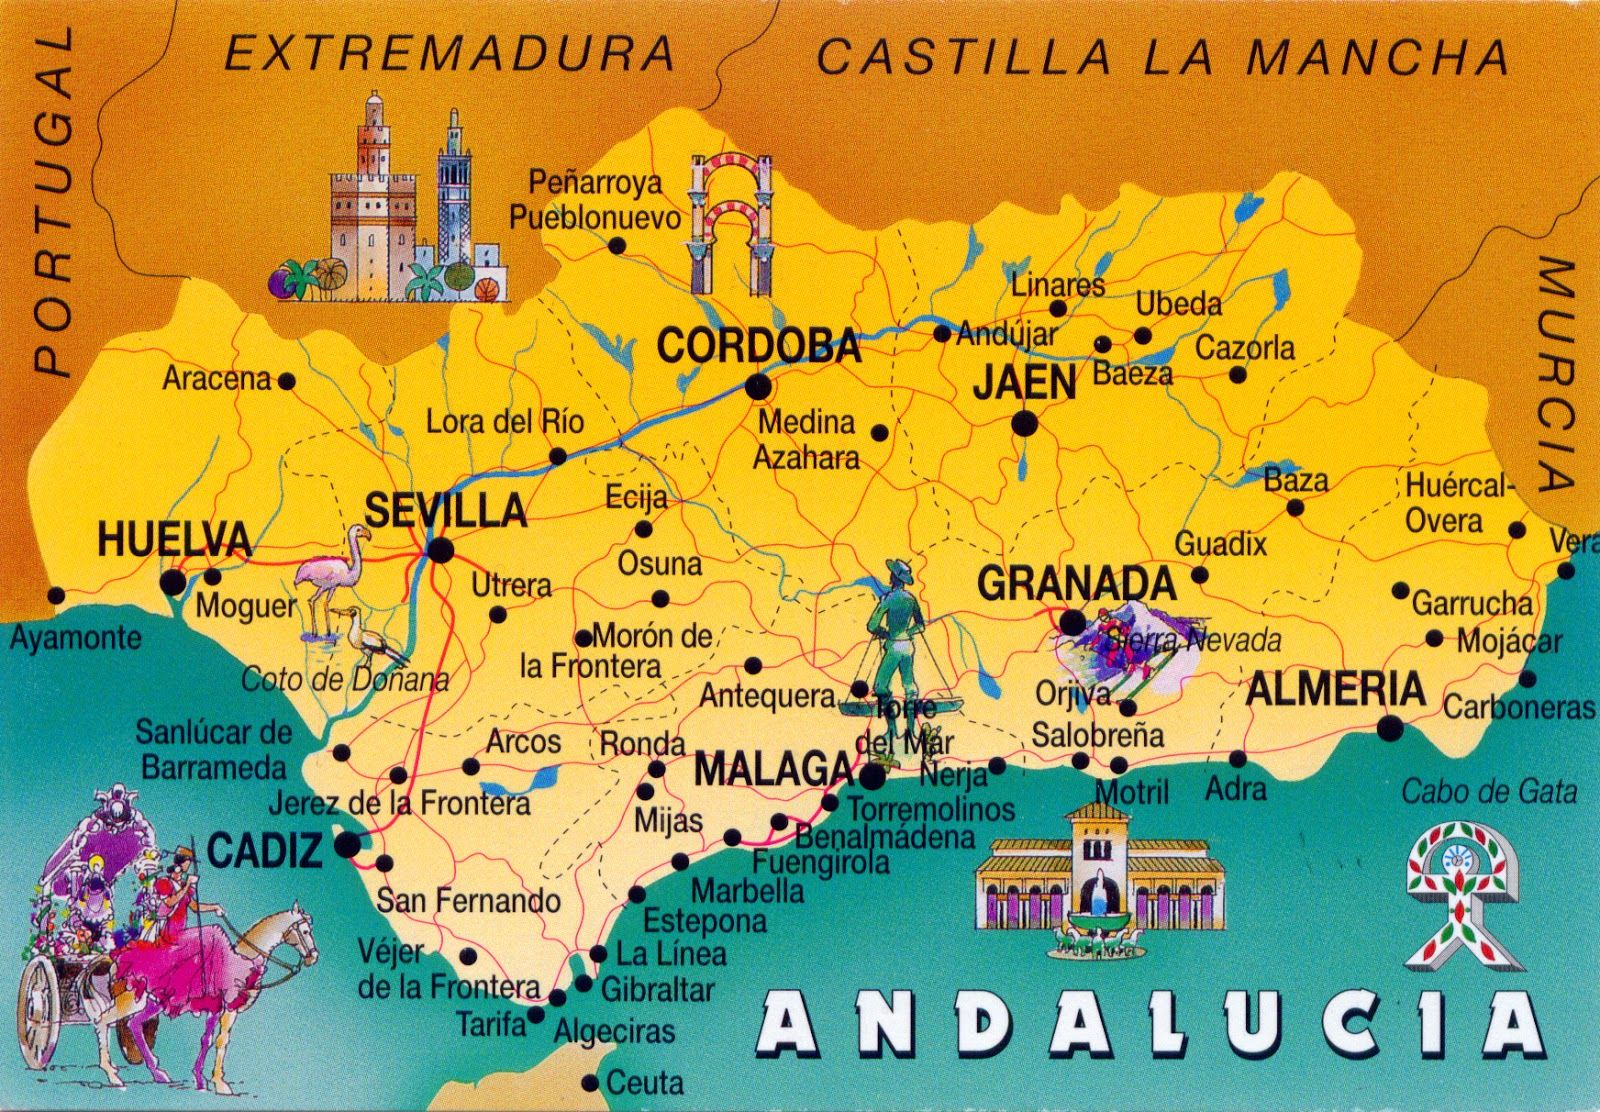 Andalucia On Map Of Spain.Andulusian Spain 0988 Spain Andalusia The Map Of Andalusia